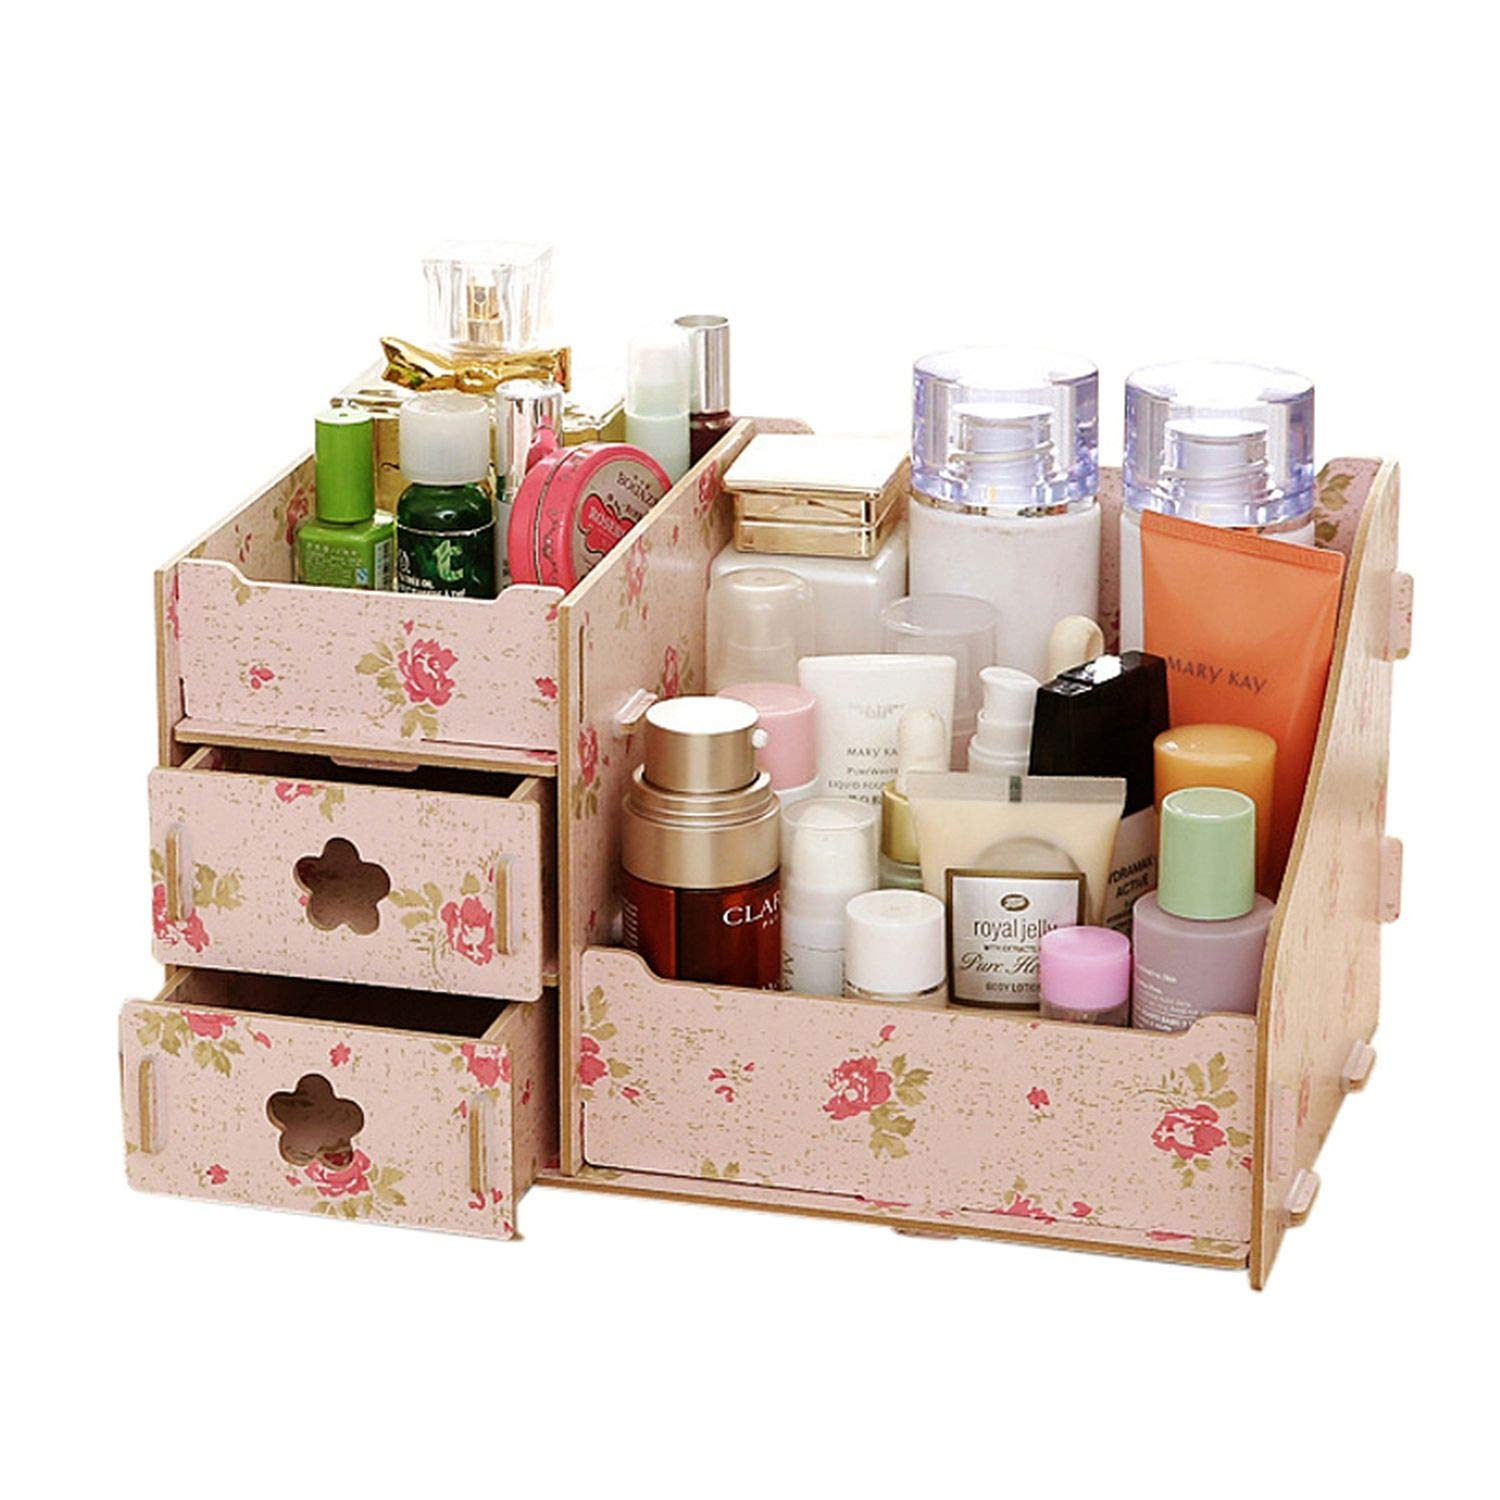 Collocation-Online Wooden Cosmetic Storage Boxes Small Drawer Jewelry Box Desktop Sundries Handmade DIY Makeup,Flower A by Collocation-Online (Image #2)